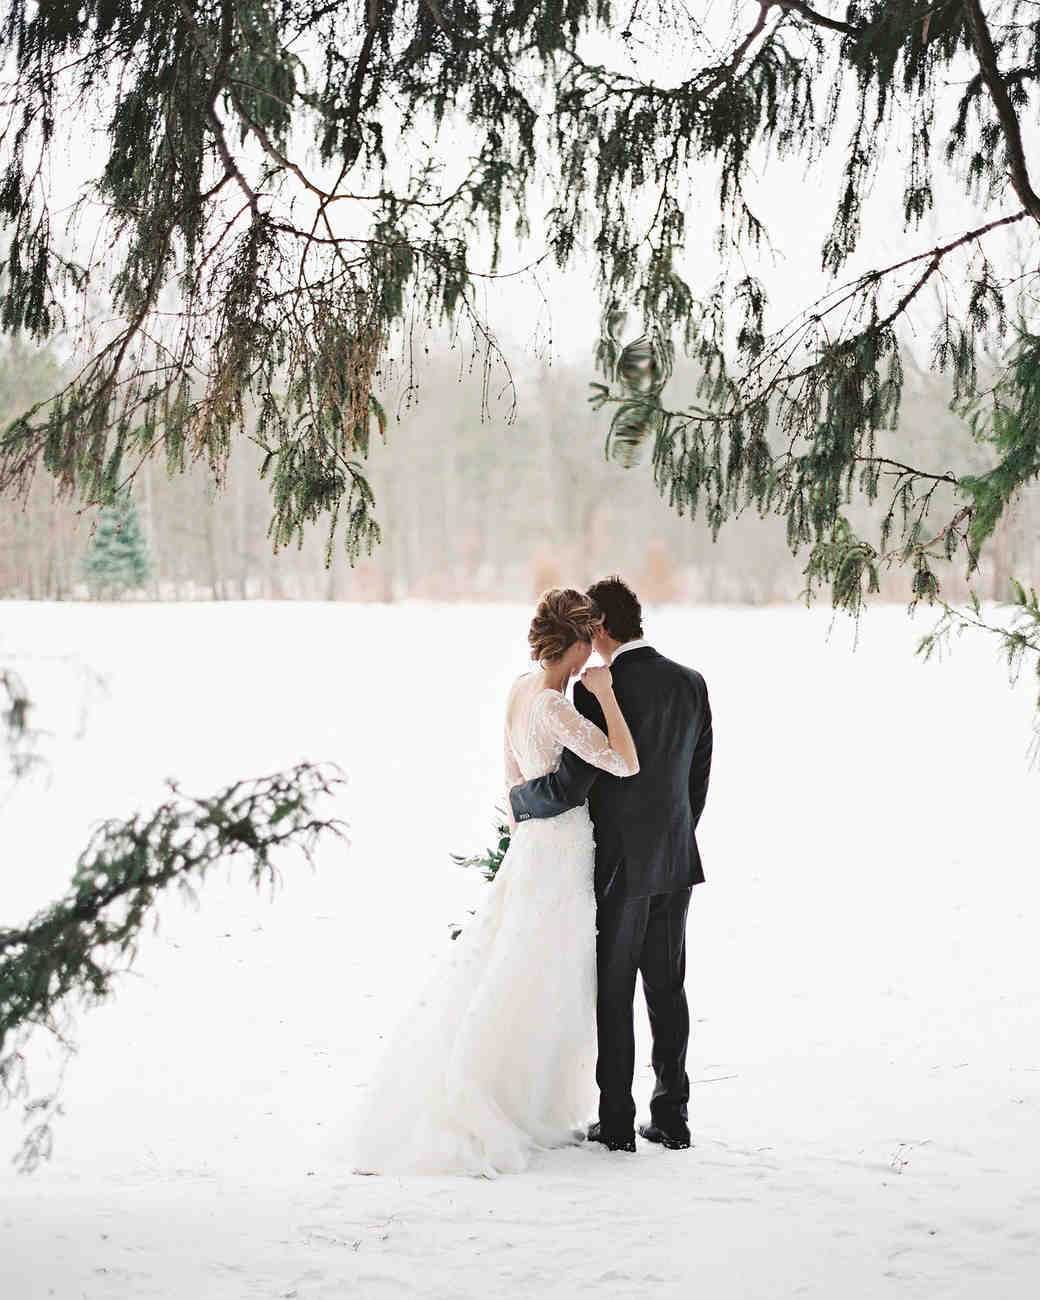 34 Snowy Wedding Photos That Will Make You Want To Get